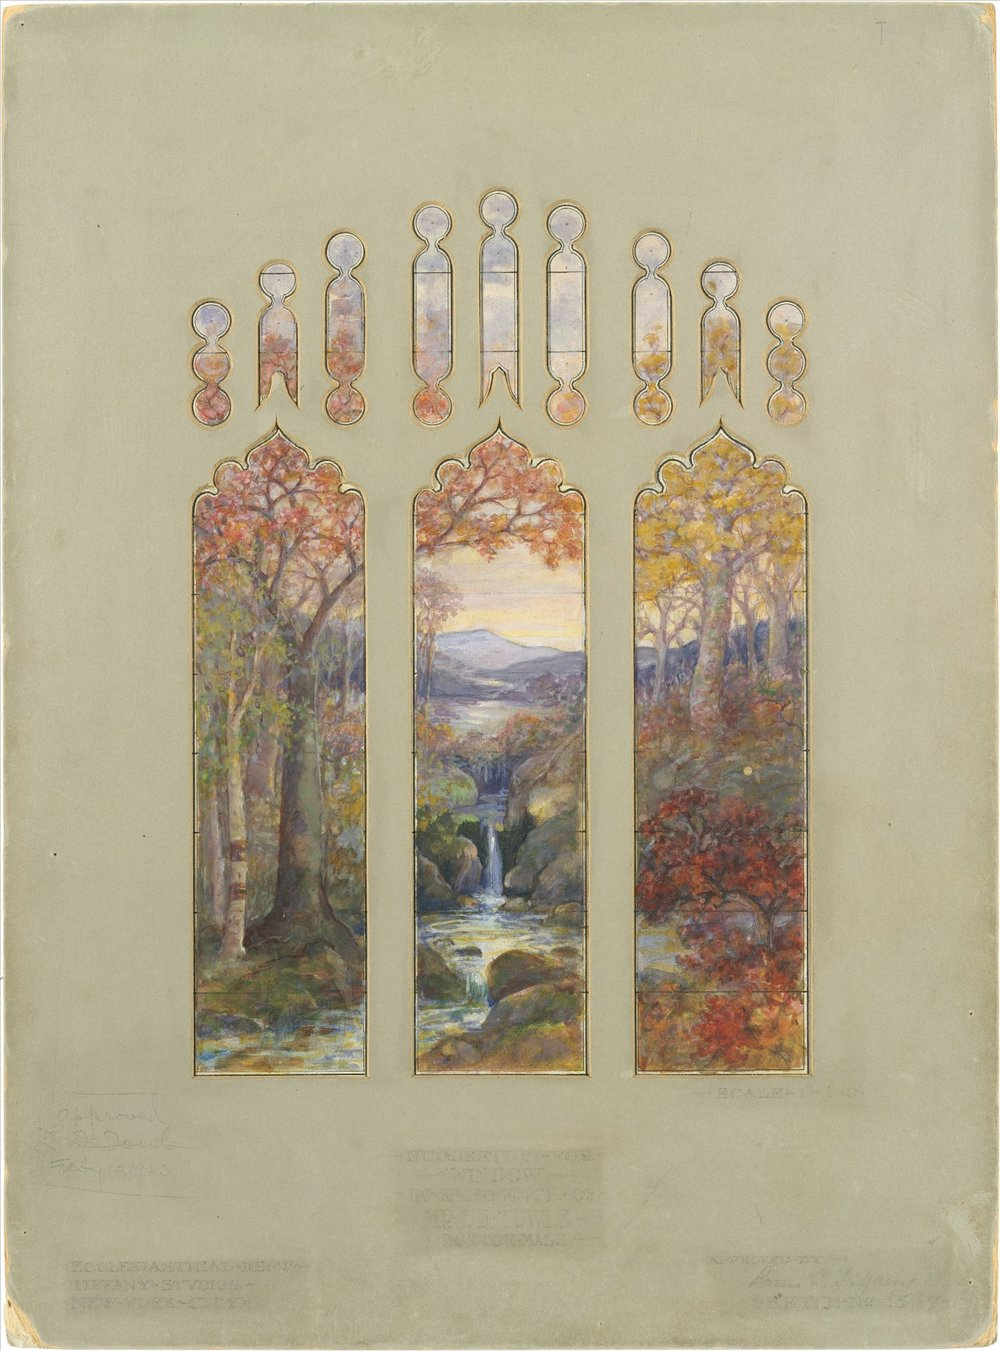 """ Art, Biology, and Conservation: Biodetermination of Works of Art ""; Luis Comfort Tiffany, ""Design for Autumn Landscape window"", 1923"